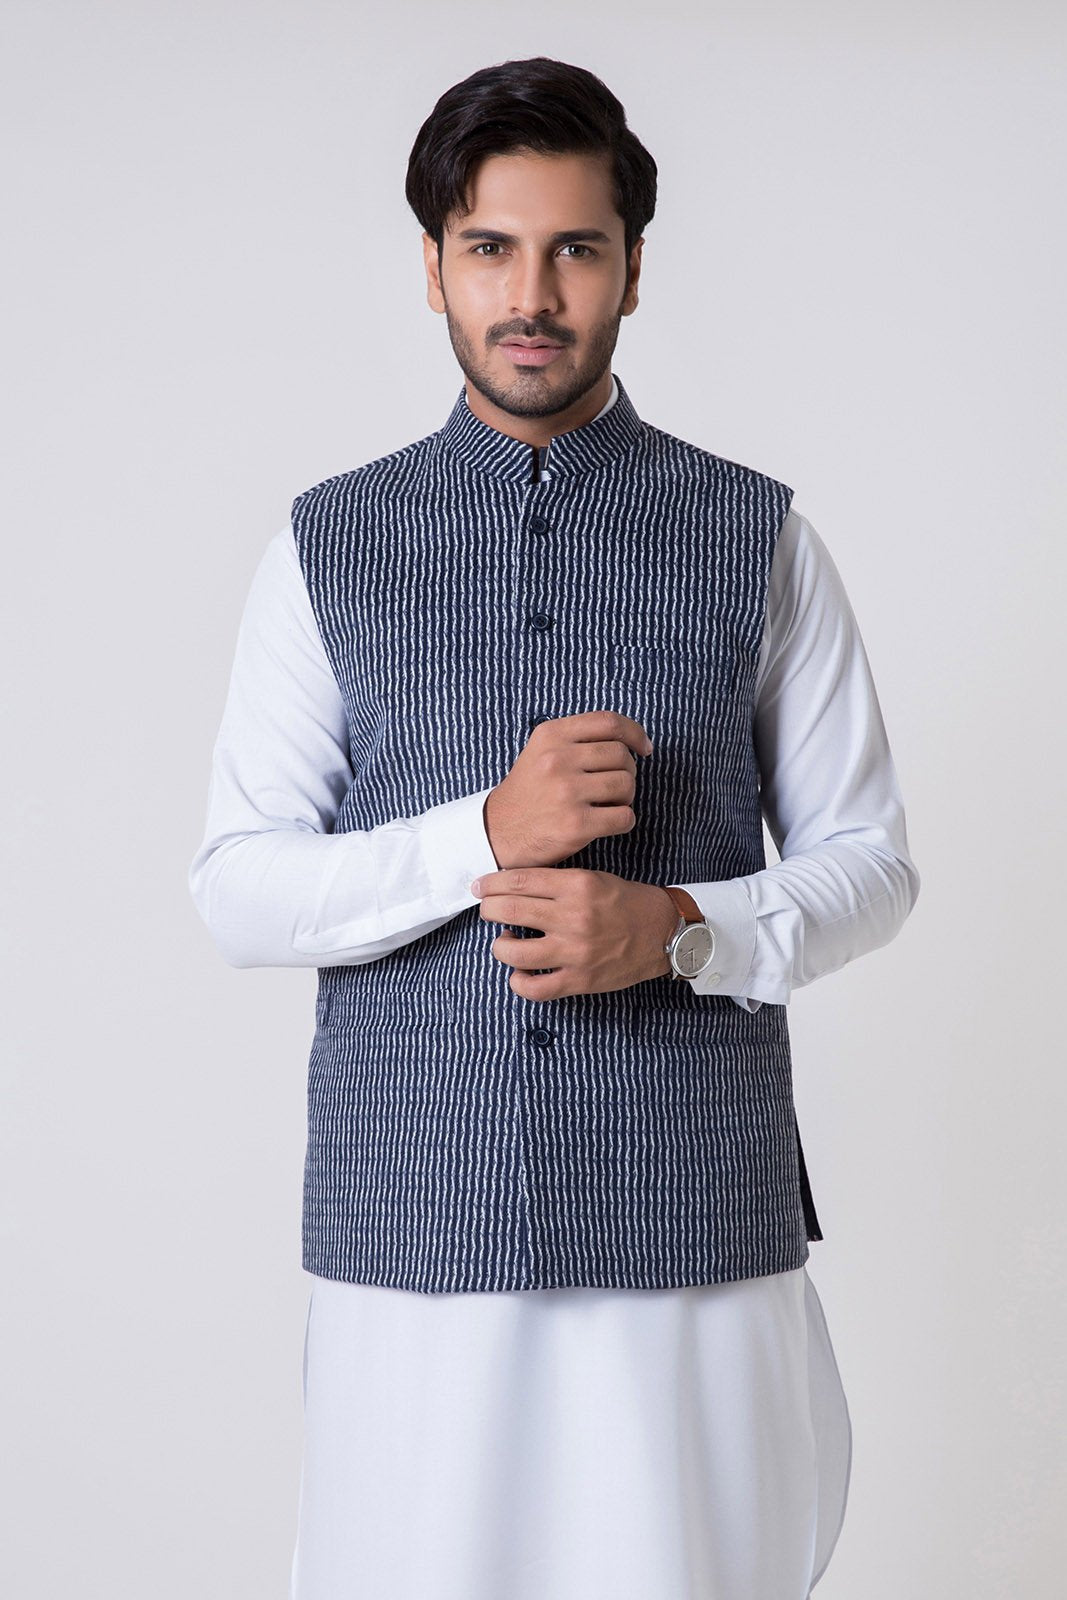 Men's Kurta Shalwar Kameez In The USA